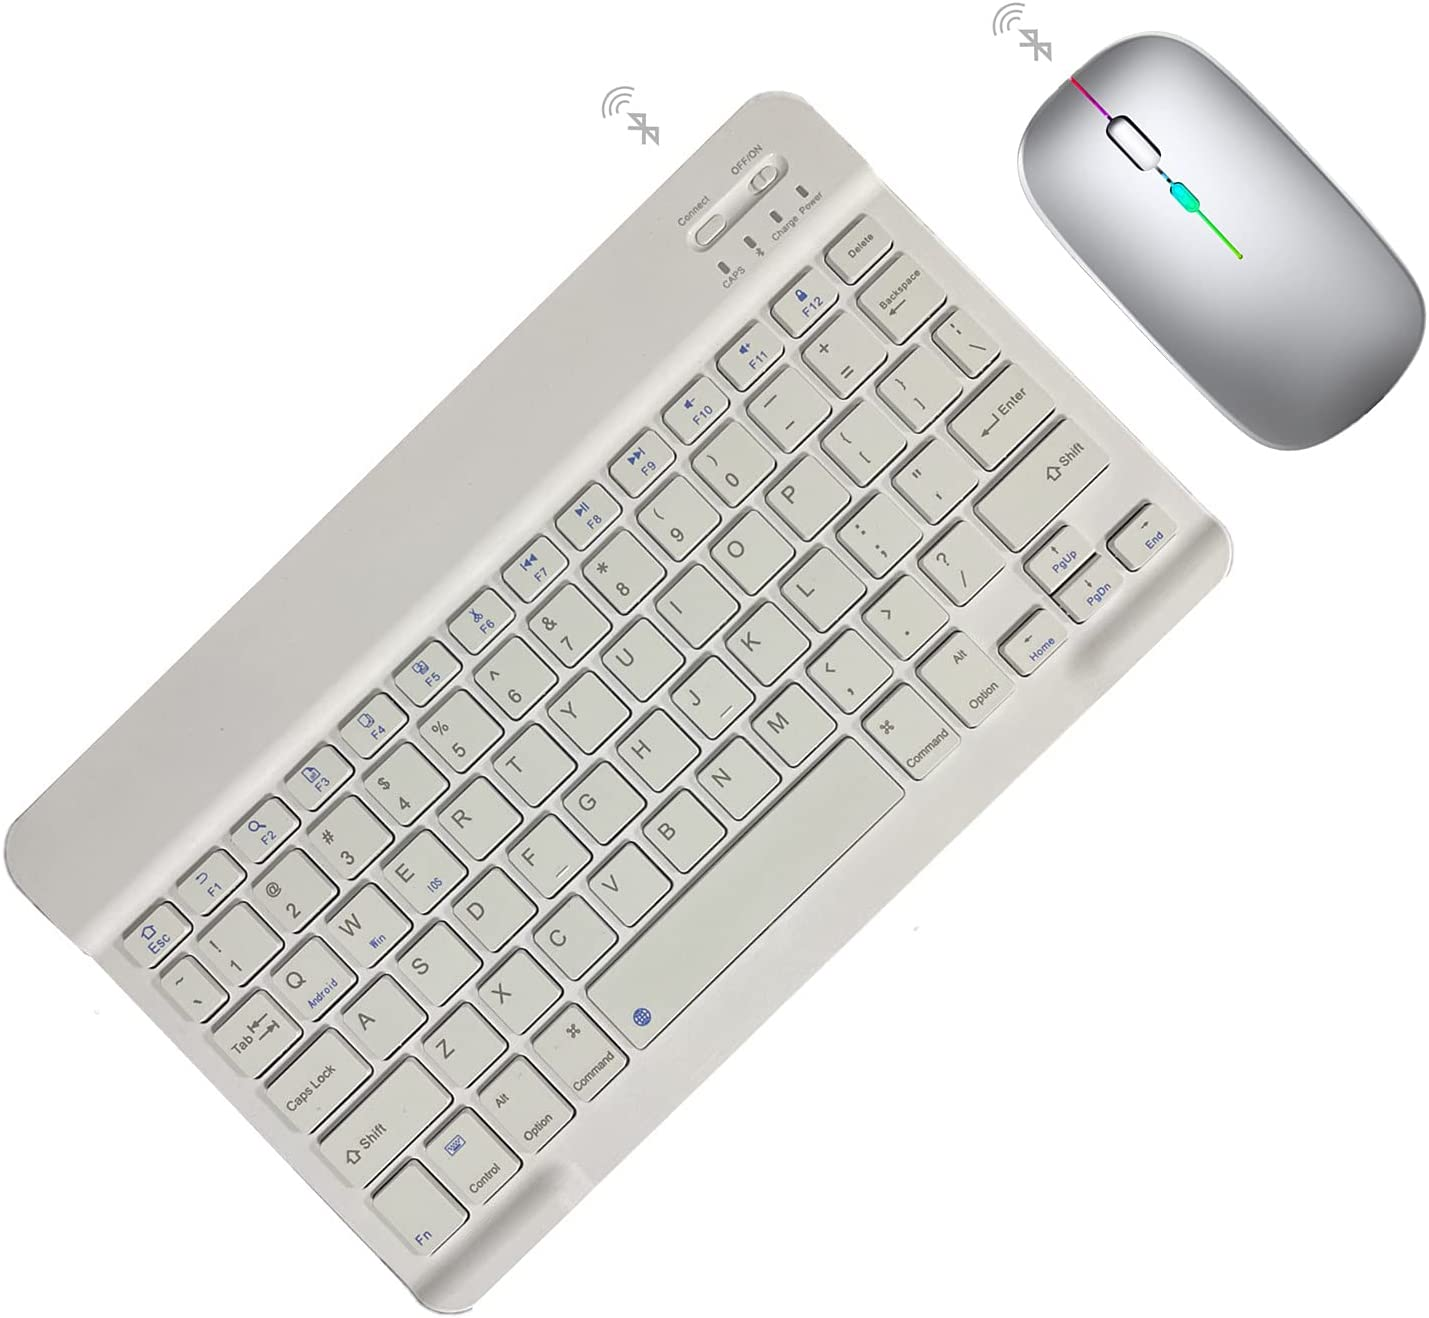 SUMAIR Wireless Keyboard and Mouse for iPad Compatible with iPad 10.2 / iPad Air 4 / iPad Pro/iPad Mini, Android Tablets,Bluetooth Keyboard and Mouse Combo Slim and Portable (White+Light Gray)